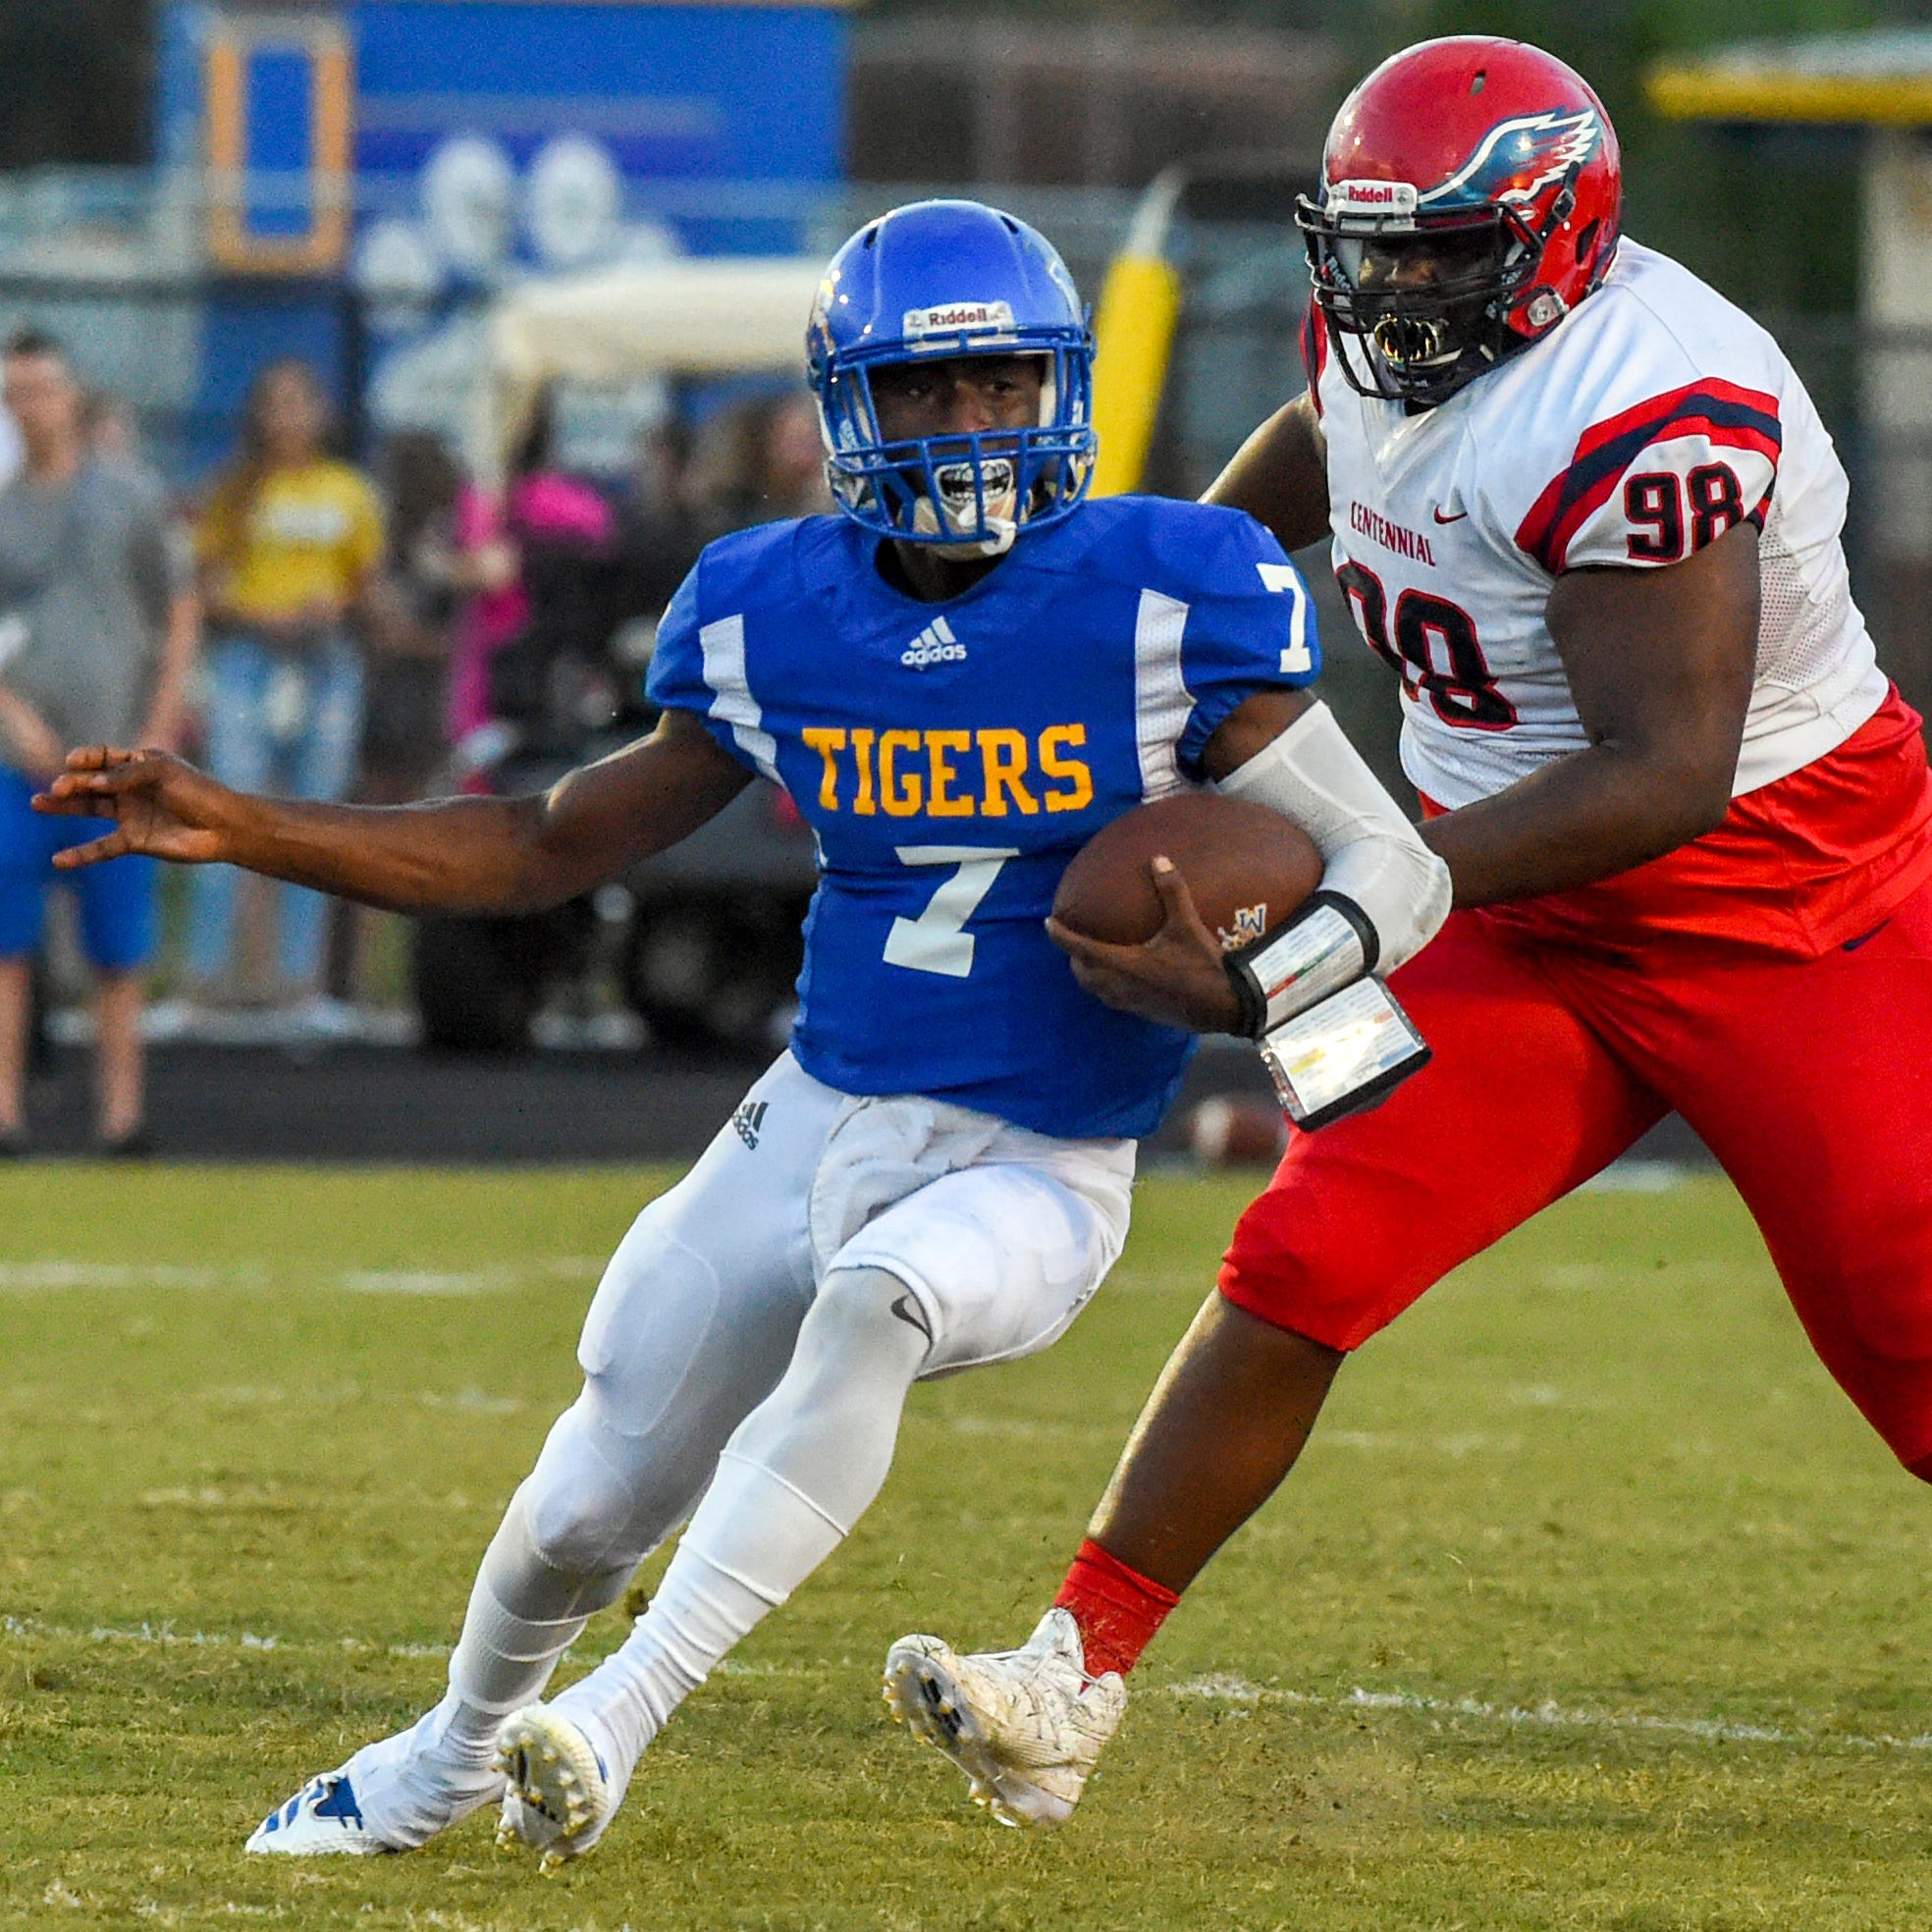 Revealing the final 2018-19 TCPalm Super 11